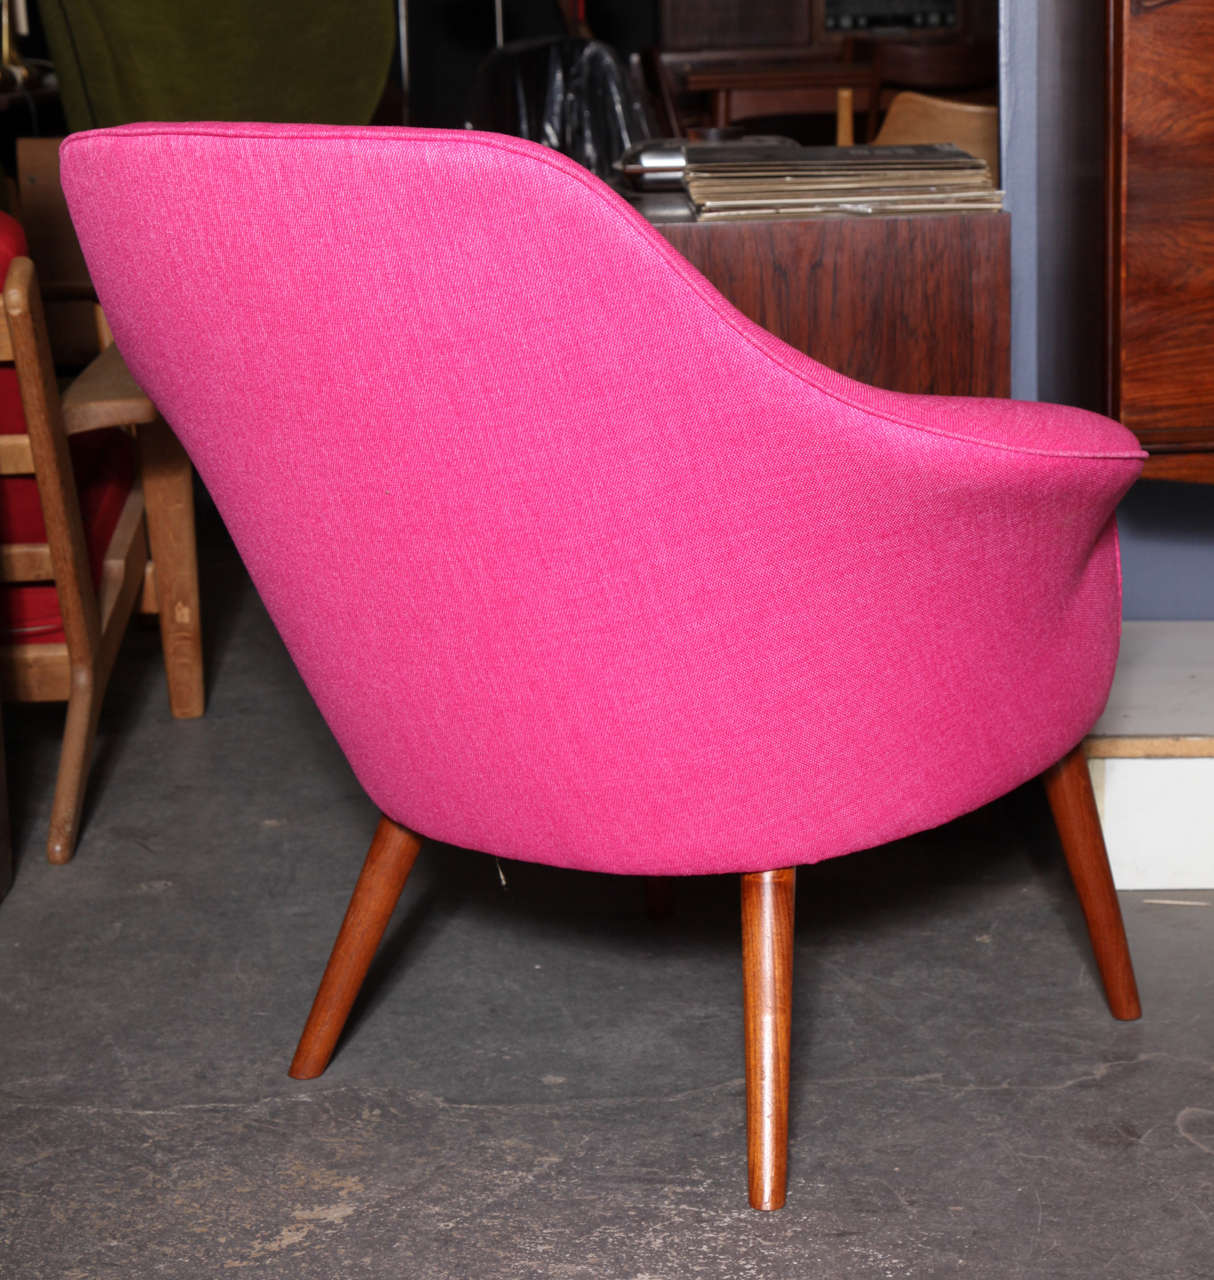 Pink Shell or Womb Chair by Hans Olsen 5